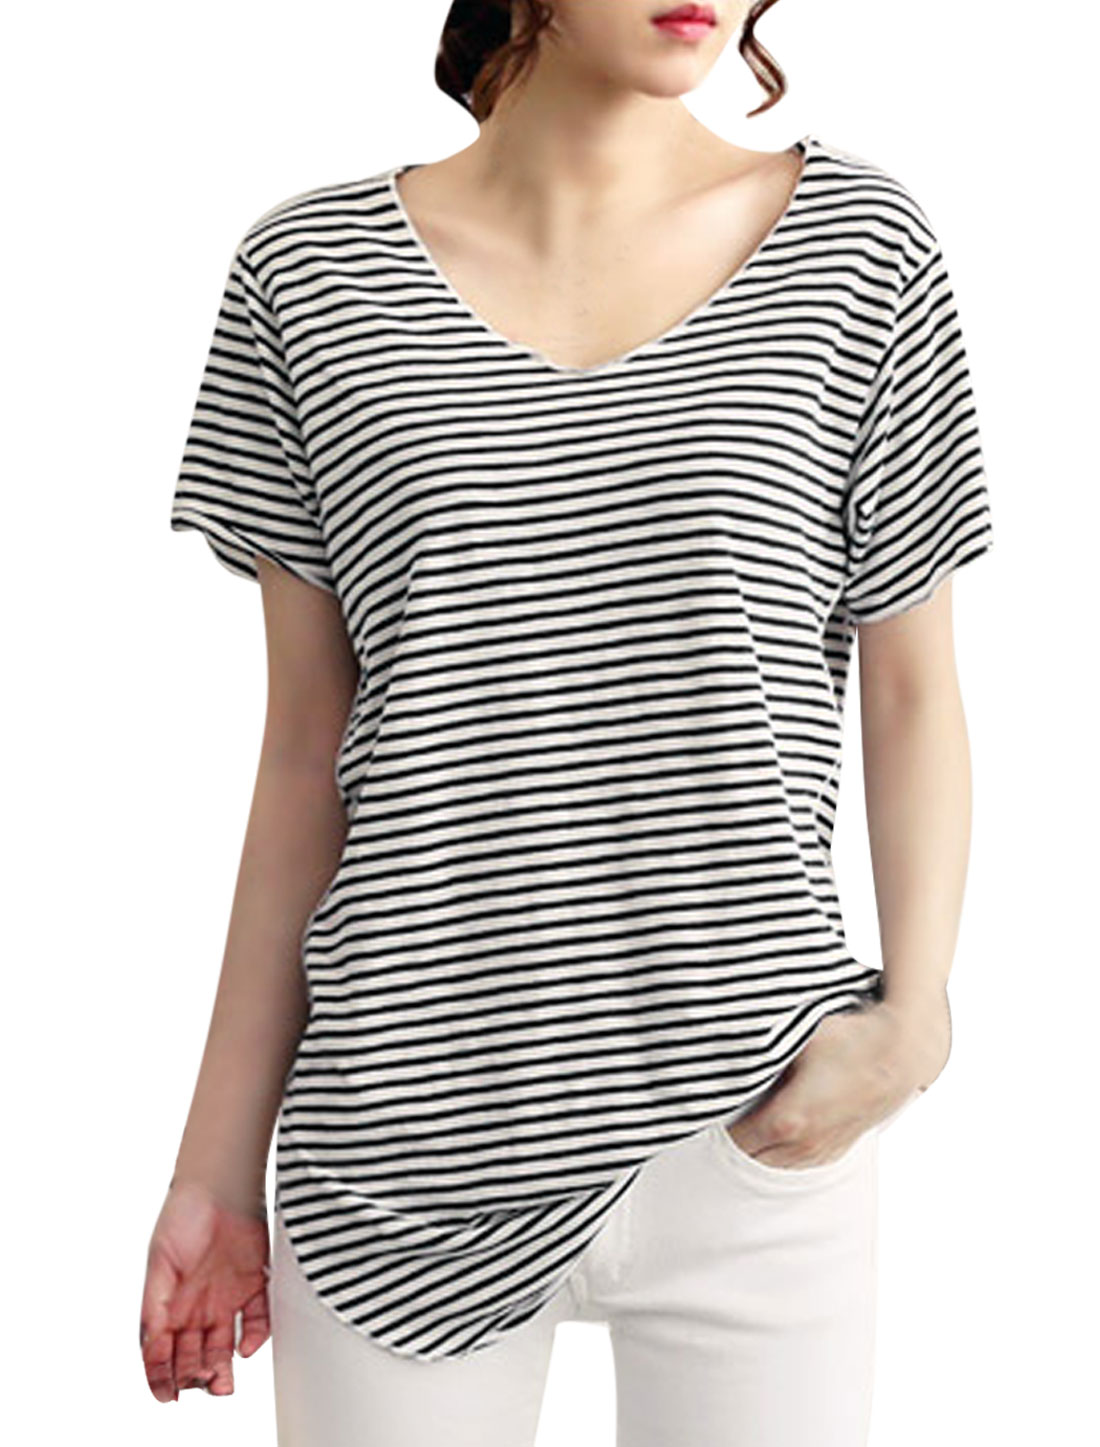 Lady Scoop Neck Stripes Round Hem Tunic Top Black White S